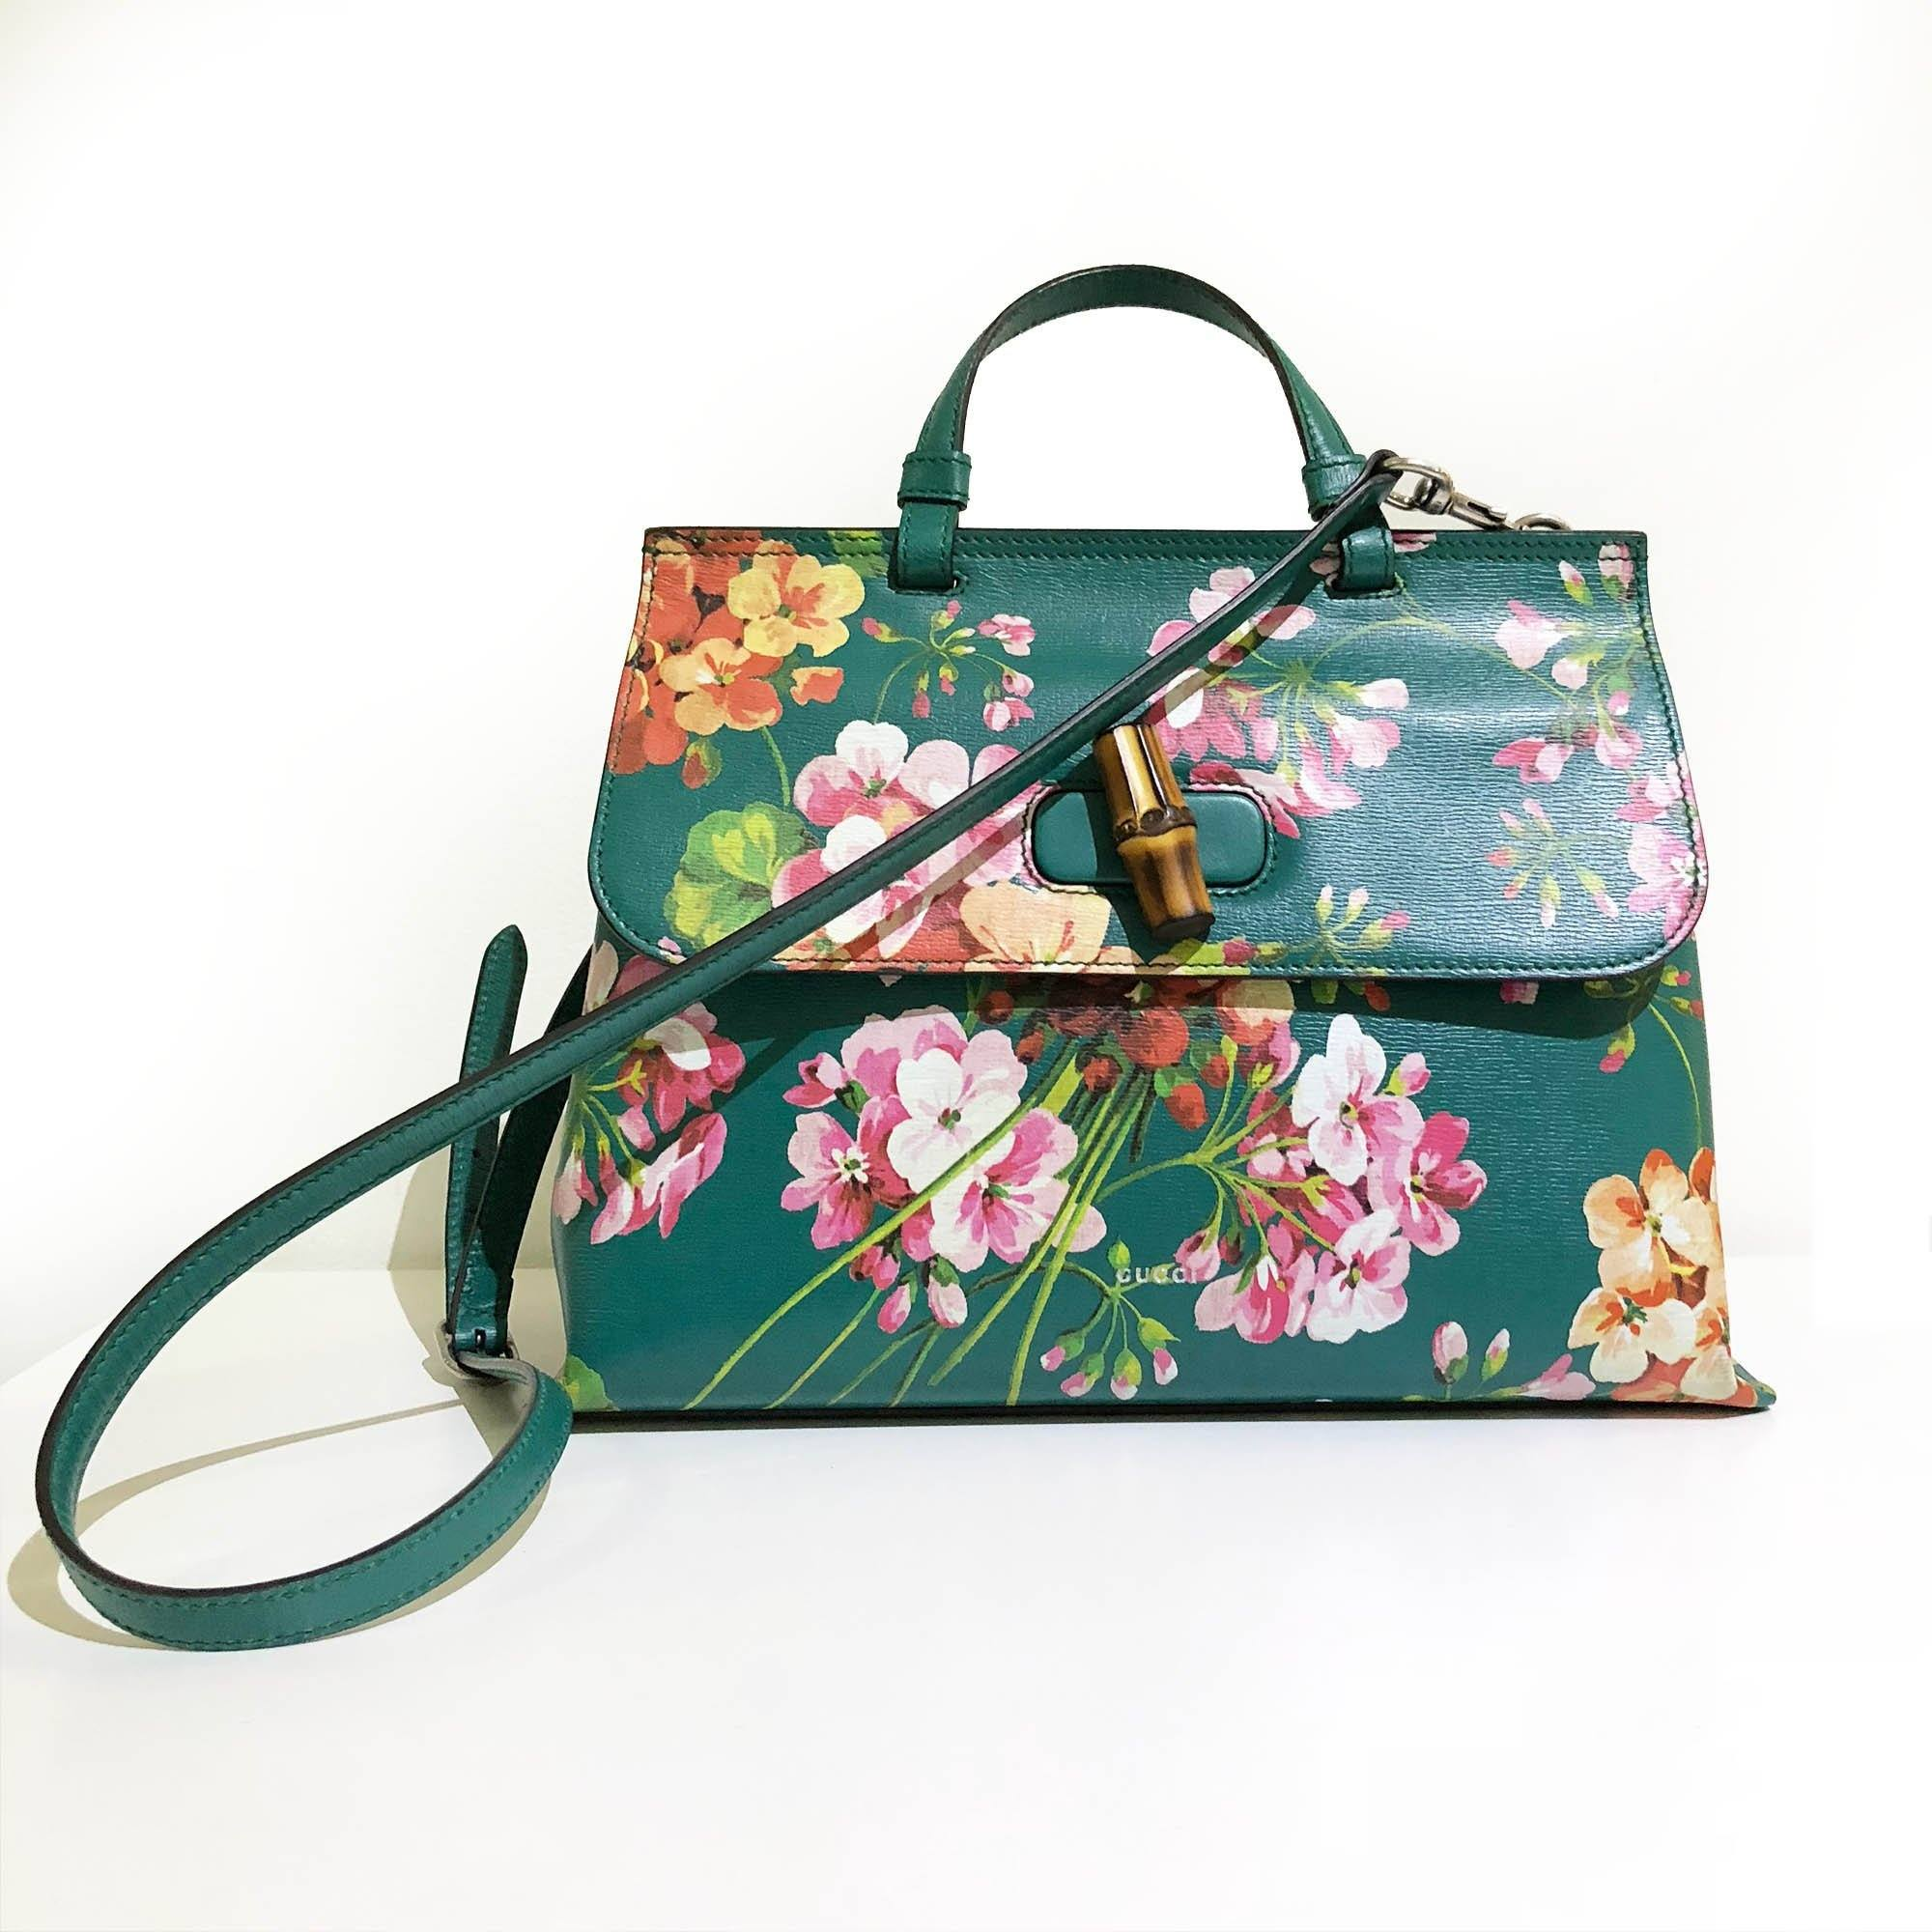 Gucci Green Shanghai Blooms Top Handle Flower Bag Handbag